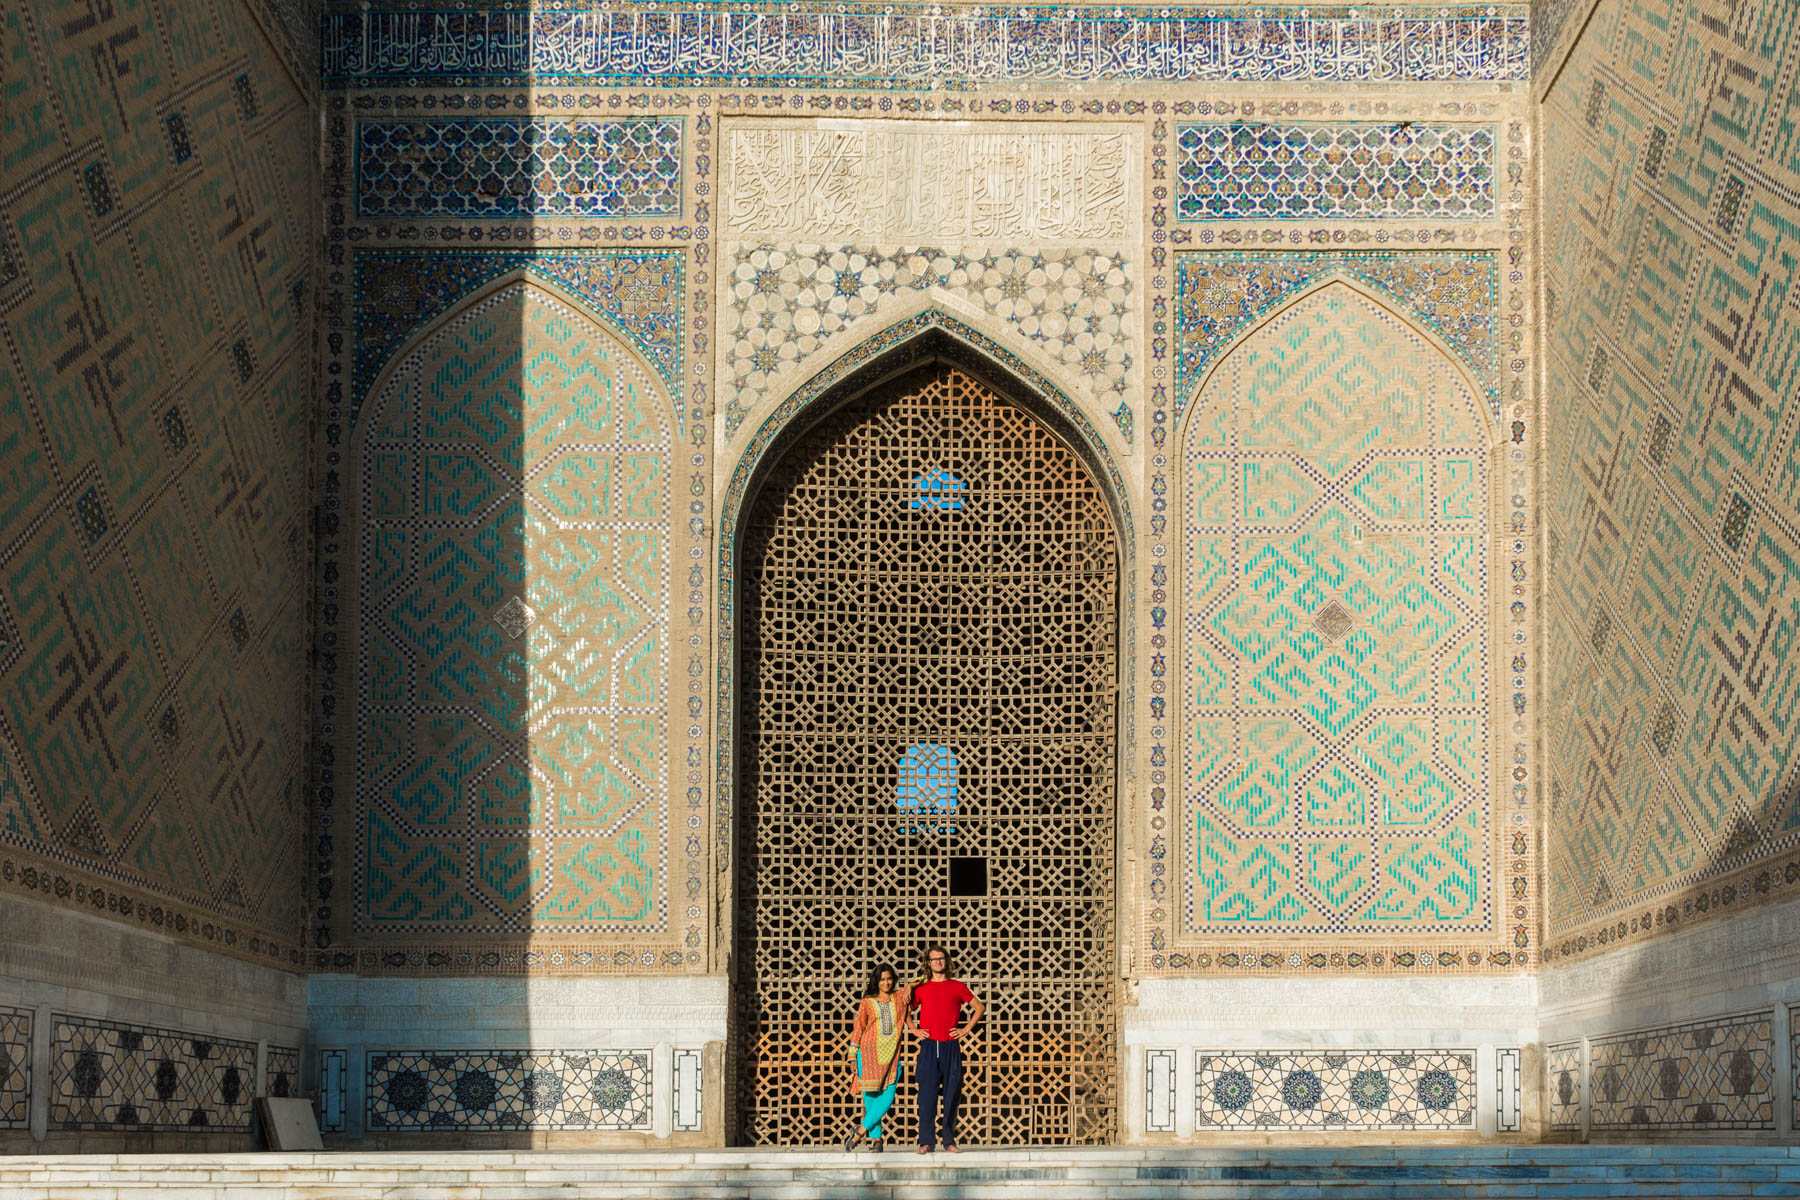 Enjoying sunrise at a mosque in Samarkand, Uzbekistan - Lost With Purpose